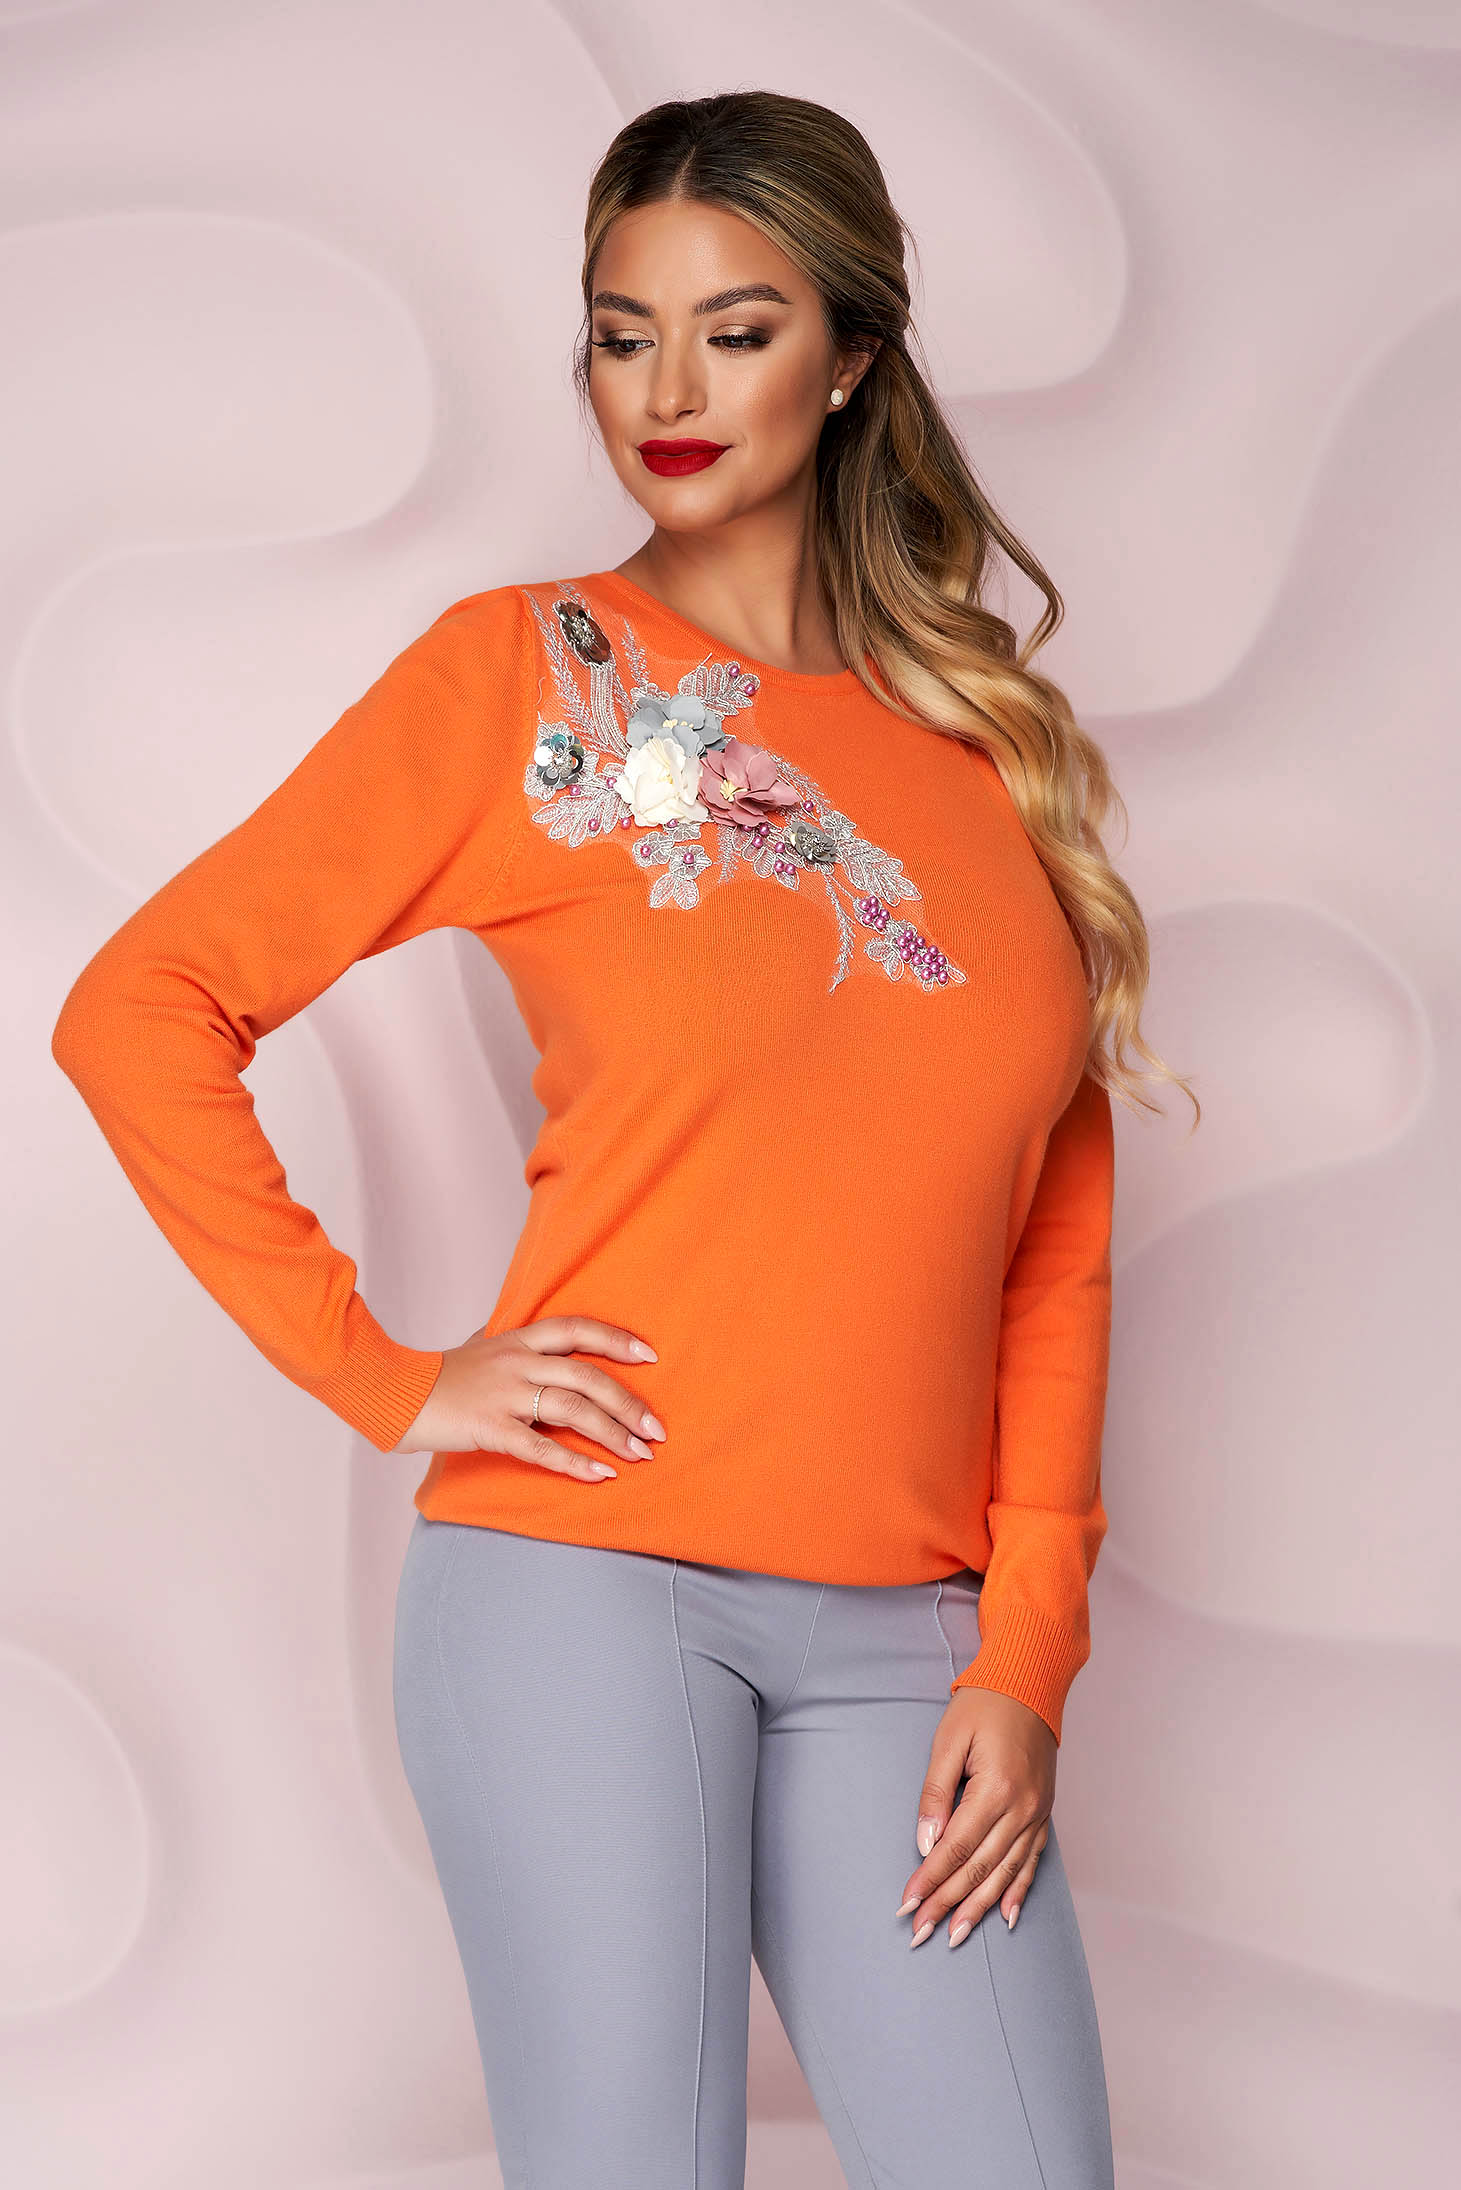 Orange sweater knitted loose fit with raised flowers with 3d effect